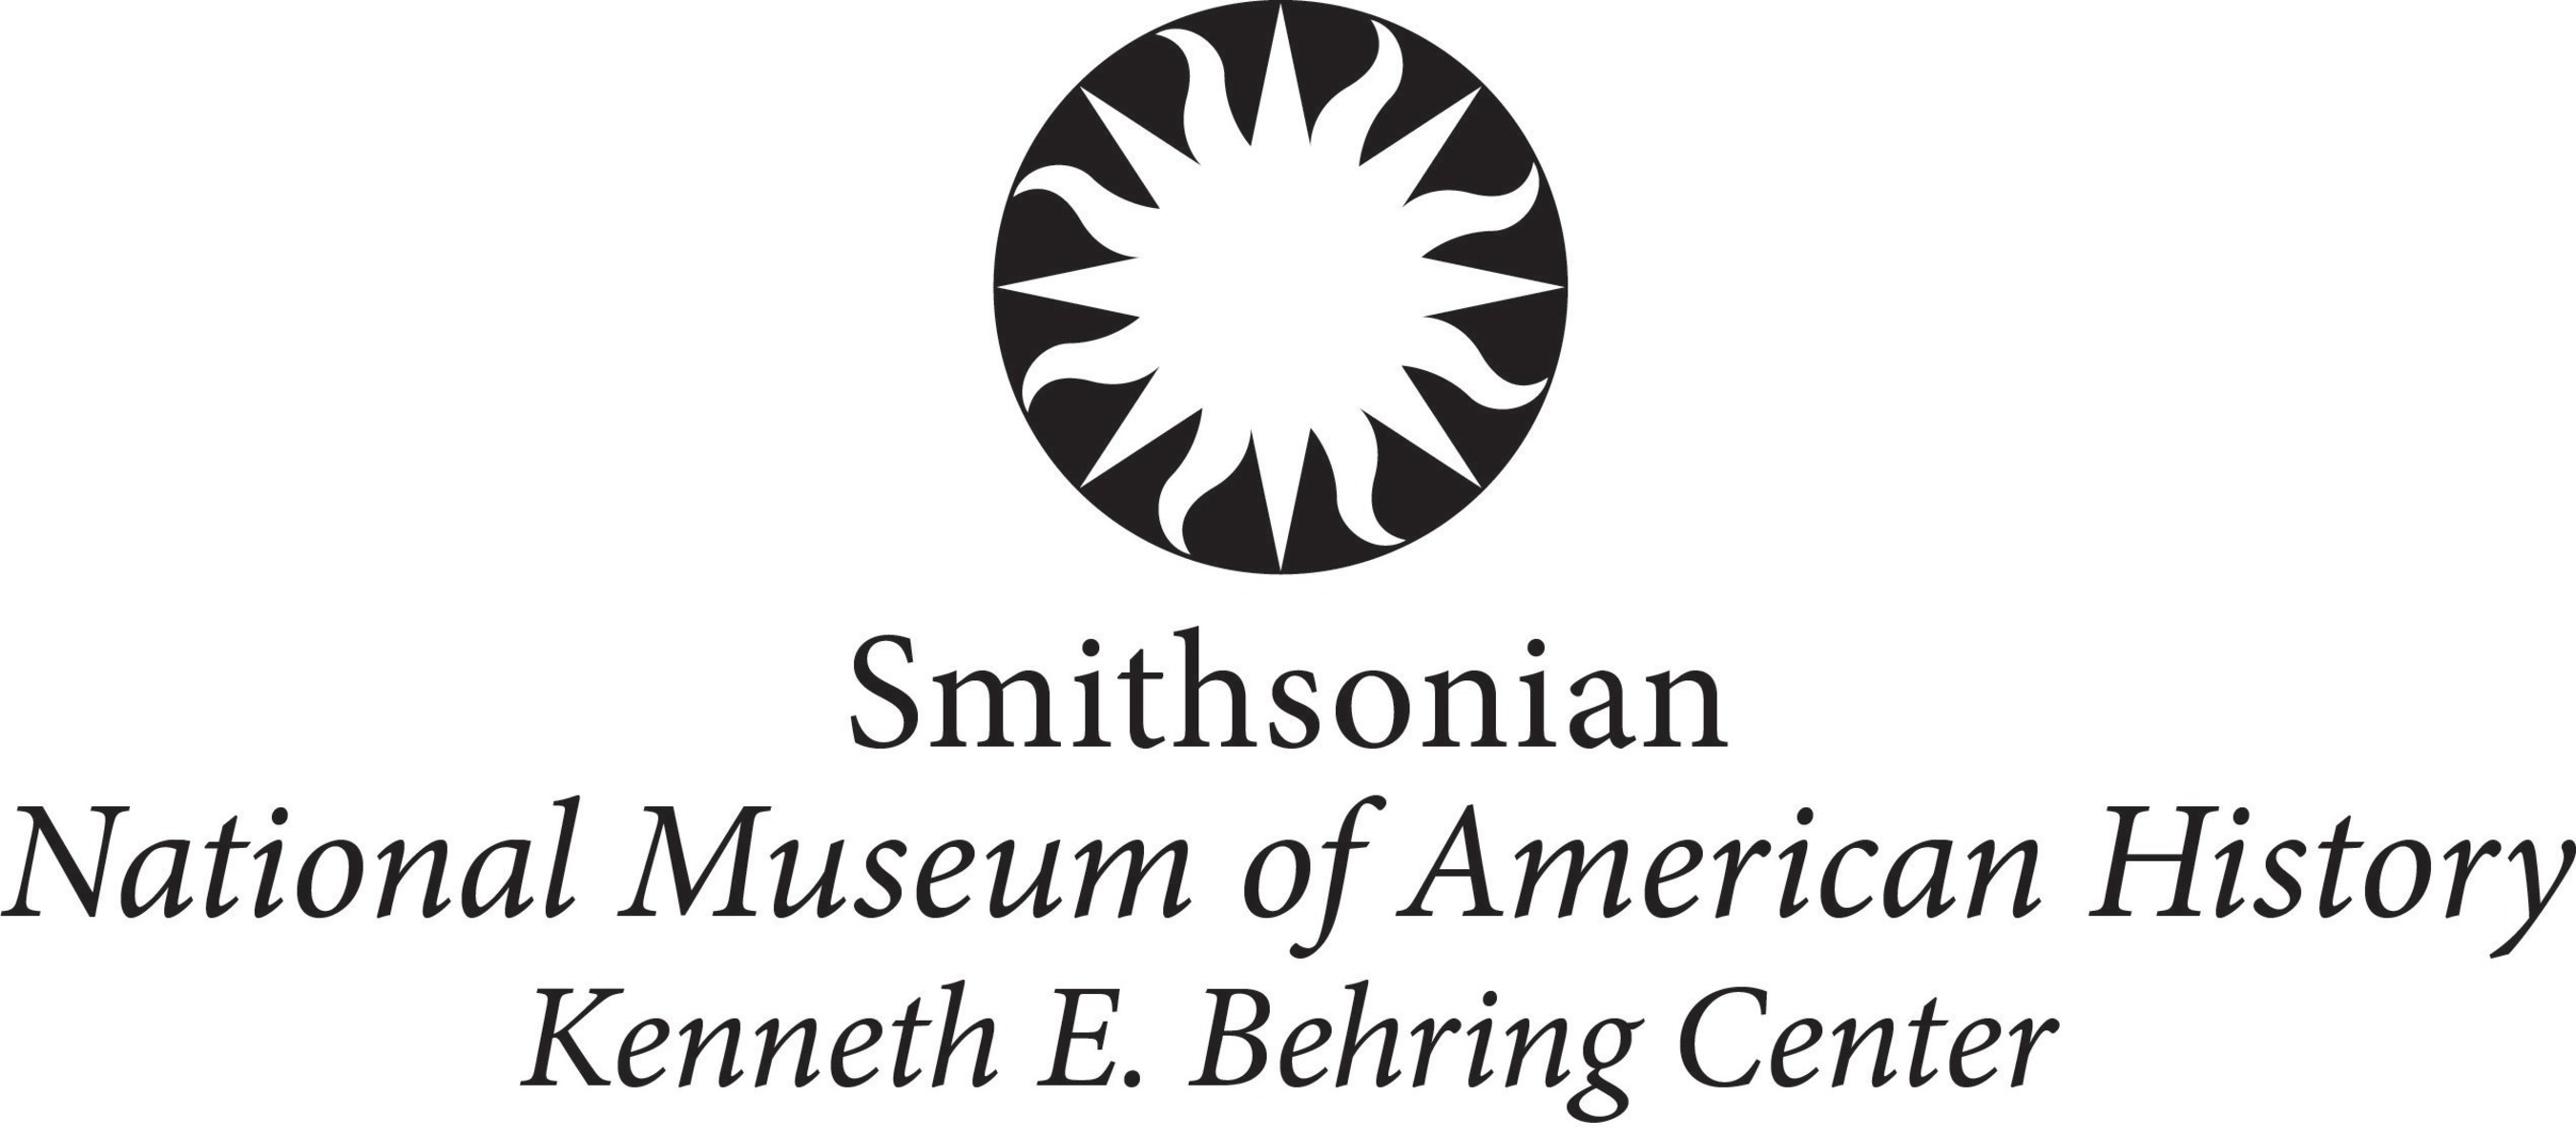 Smithsonian National Museum of American History